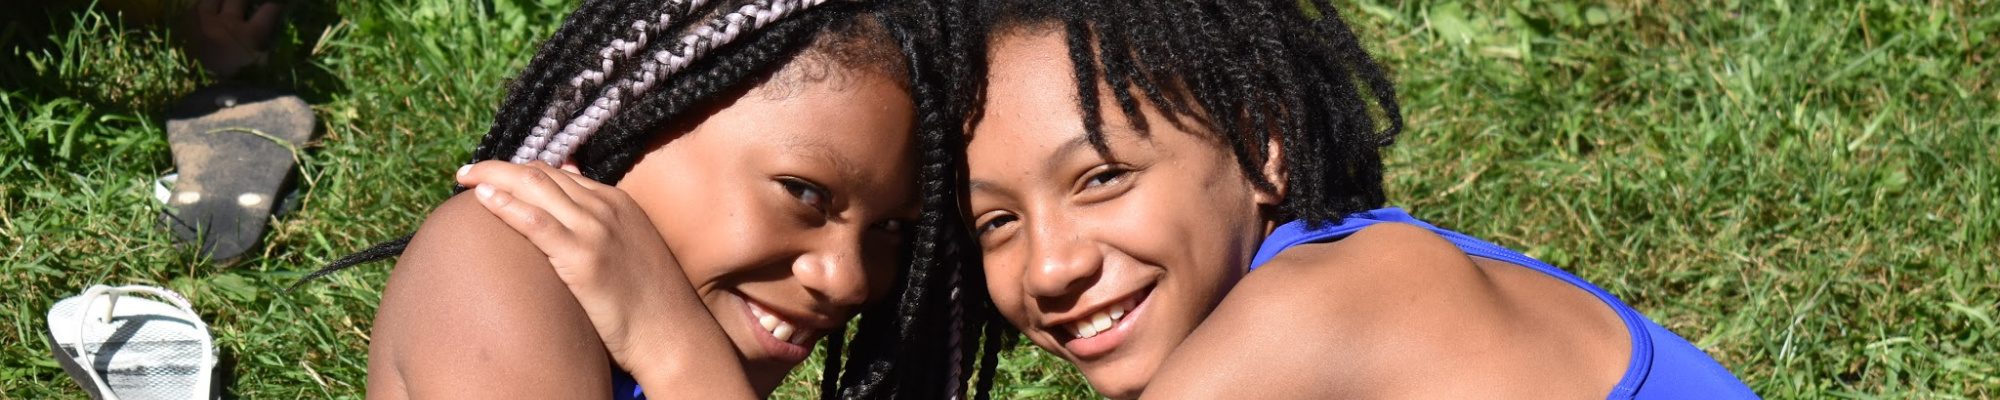 Two young girls with foreheads together, looking at the camera